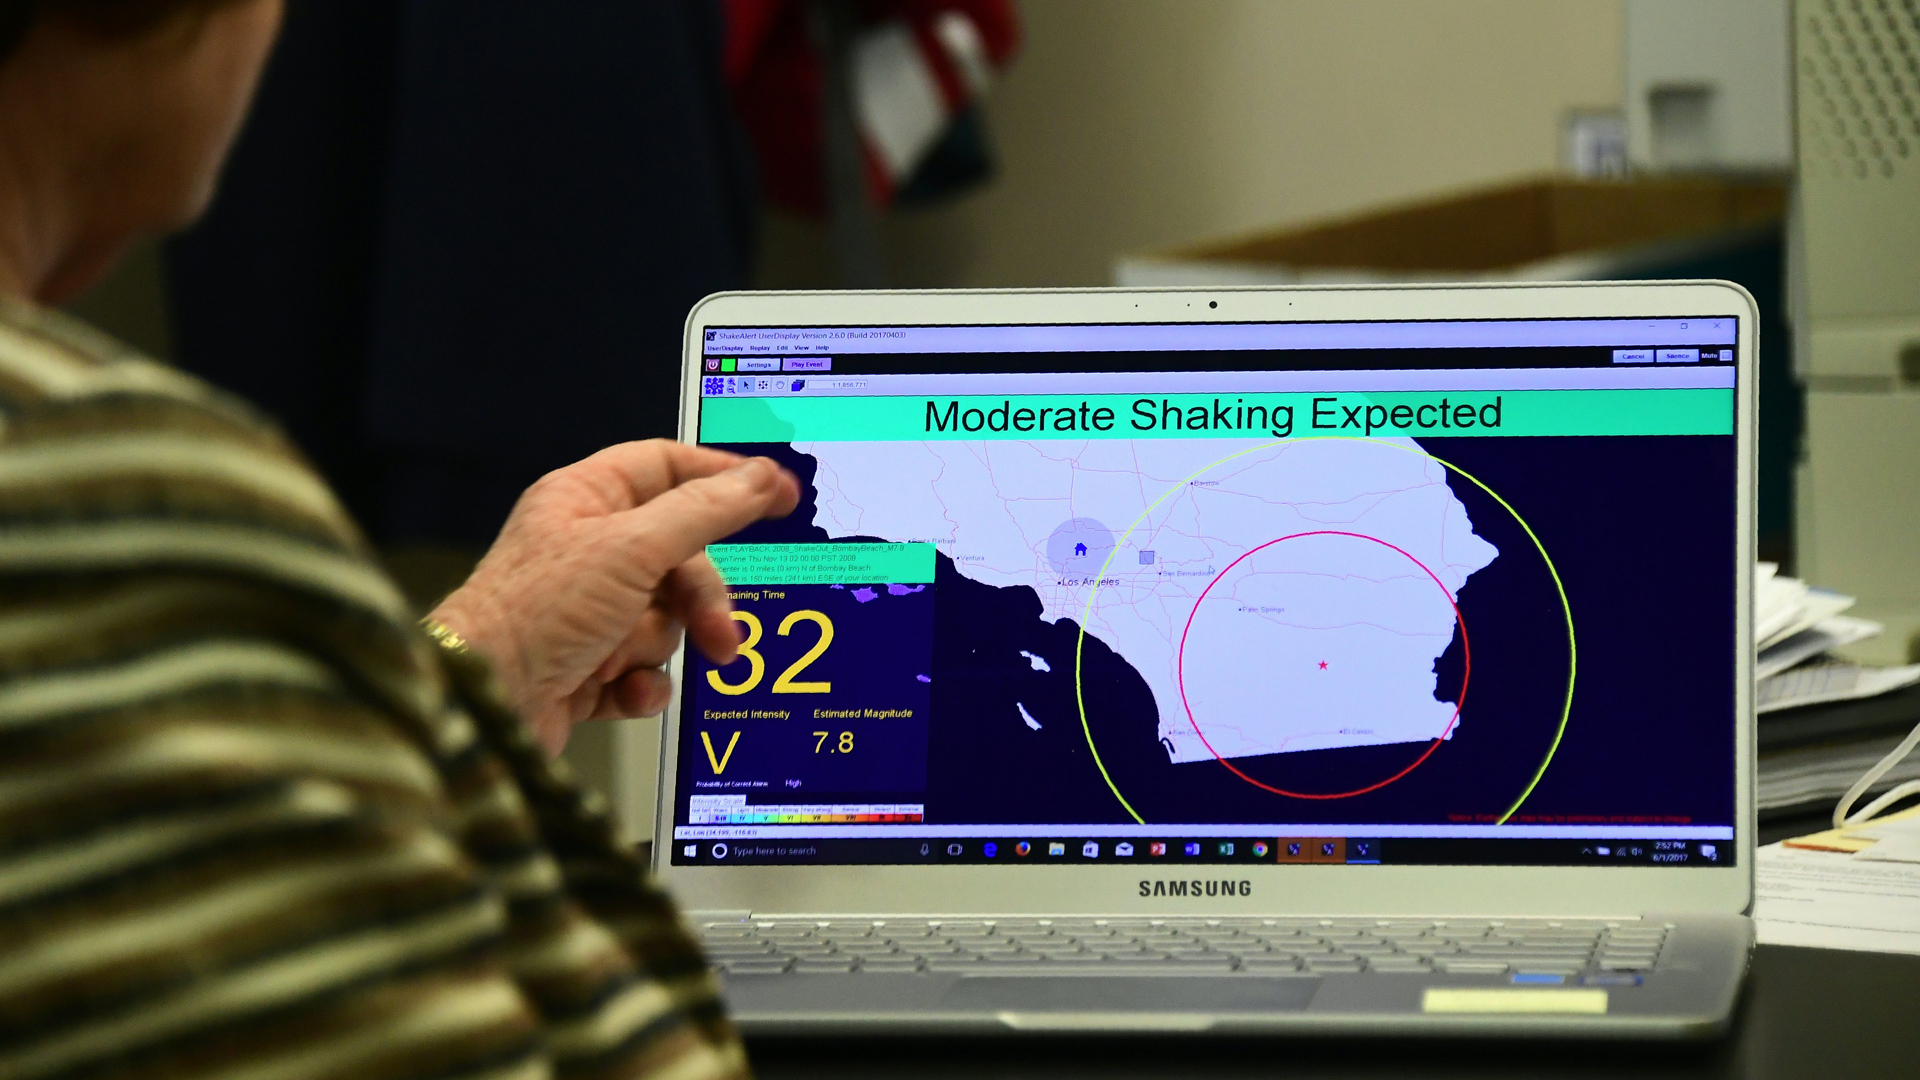 In this file photo, Margaret Vinci, manager of the Seismological Laboratory at Caltech points to a shake alert user display on a laptop screen, set for a limited release on June 1, 2017, at the Caltech Seismological Laboratory in Pasadena. (FREDERIC J. BROWN/AFP/Getty Images)